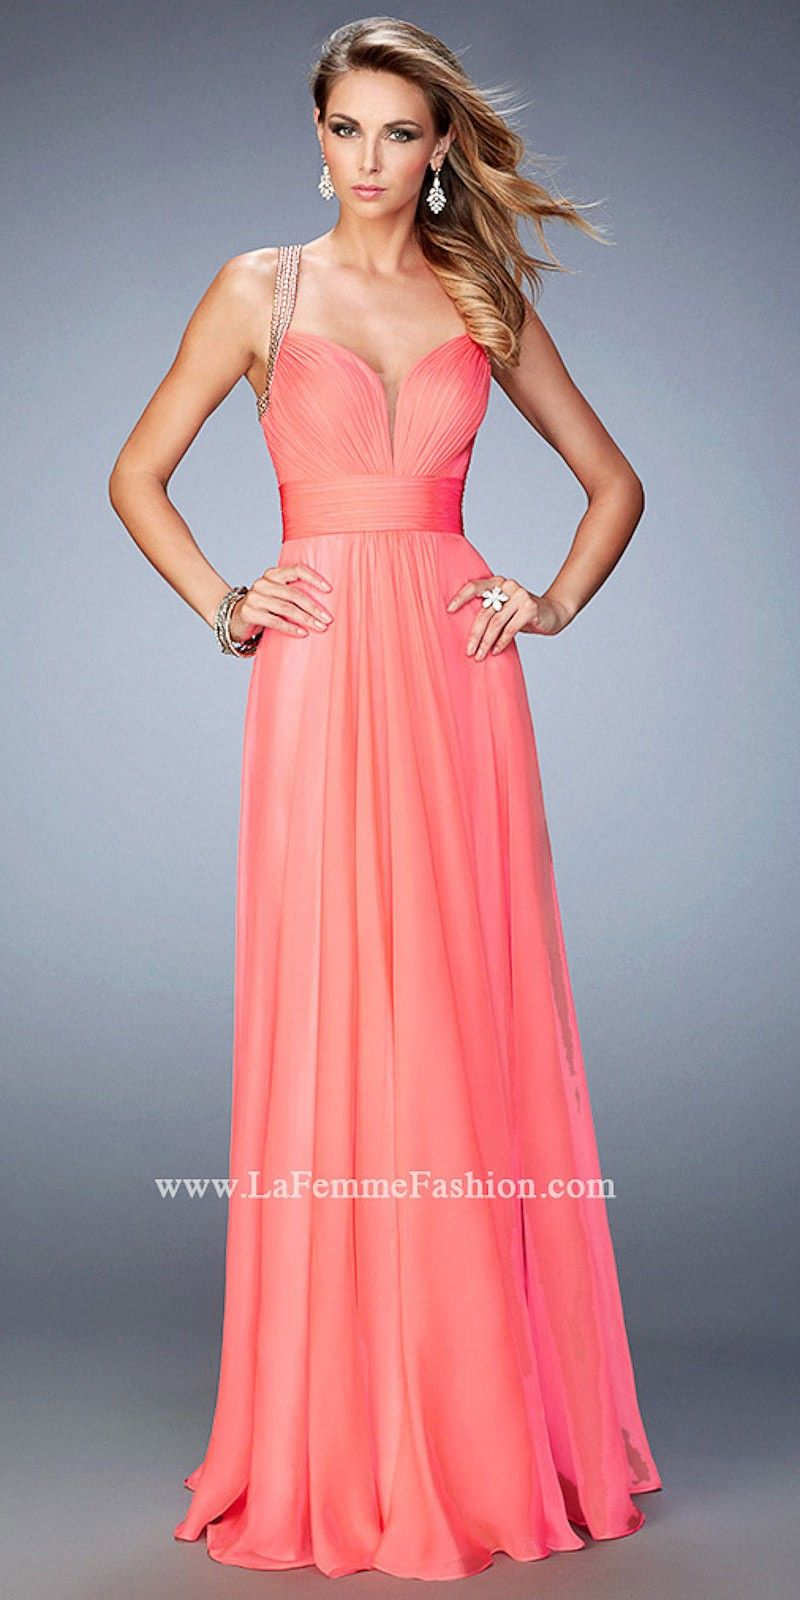 Iridescent Sweetheart Chiffon Prom Dress by La Femme | poli | Pinterest